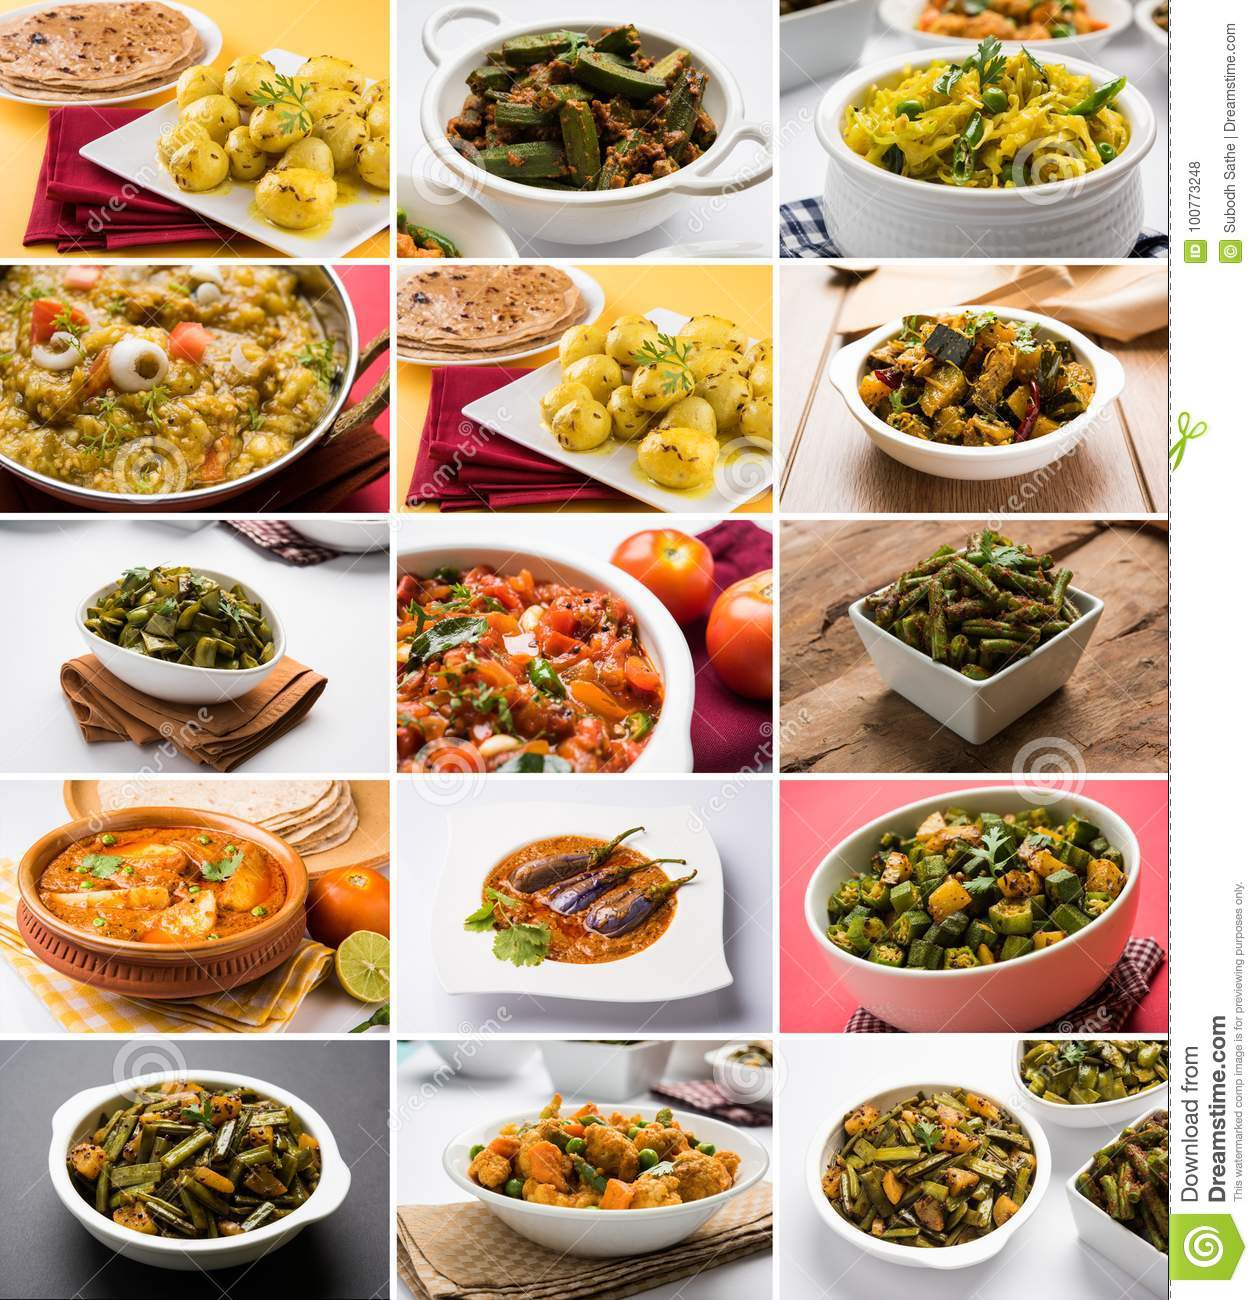 Wondrous Stock Photo Of Collage Of Indian Popular Main Course Download Free Architecture Designs Scobabritishbridgeorg